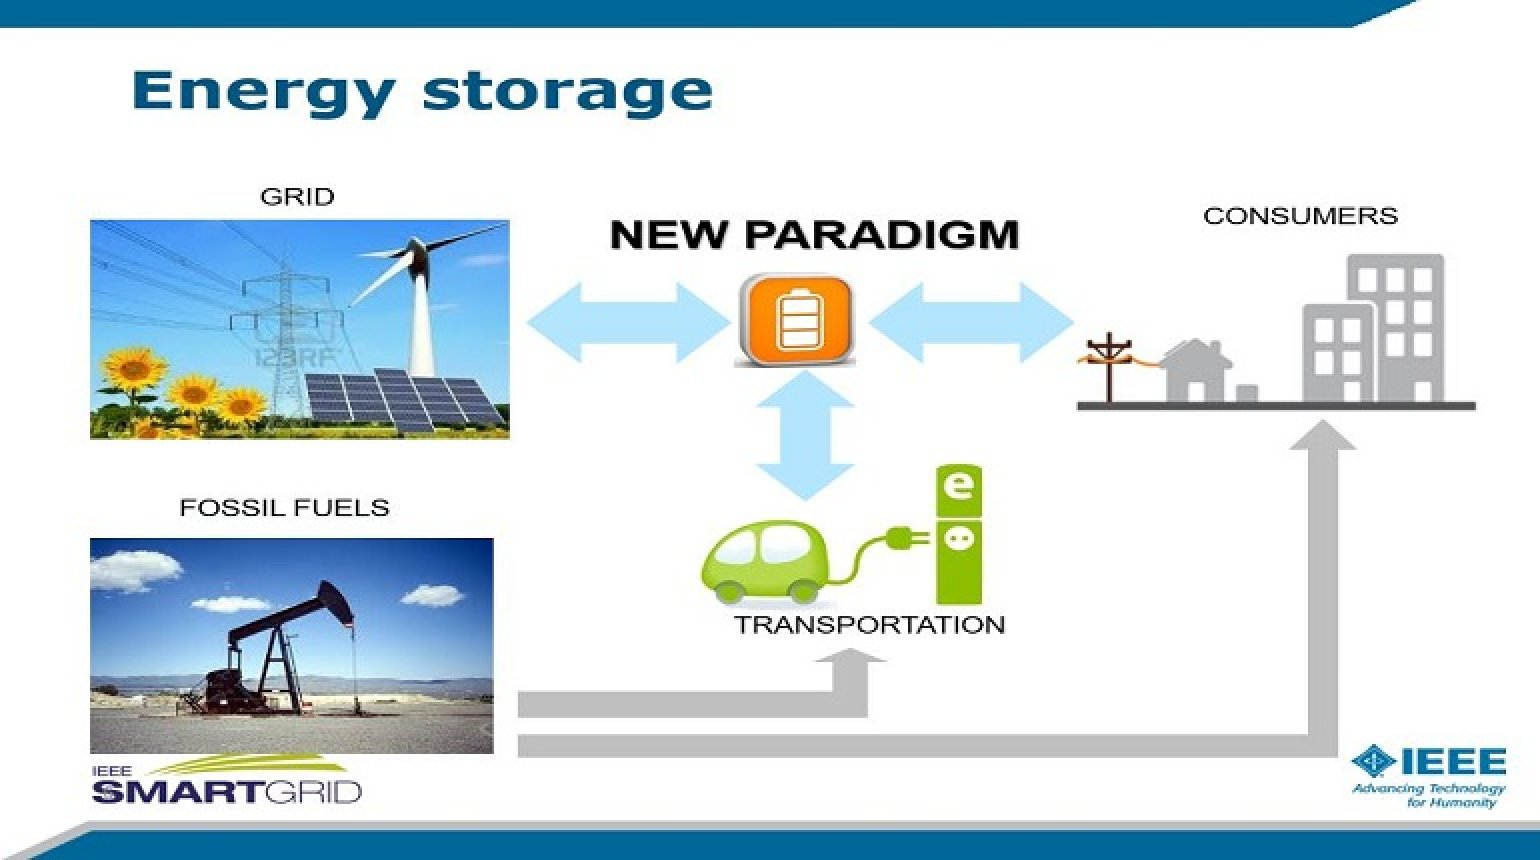 Enabling Smart Grids: Energy Storage Technologies, Opportunities and Challenges with Lucia Gauchia